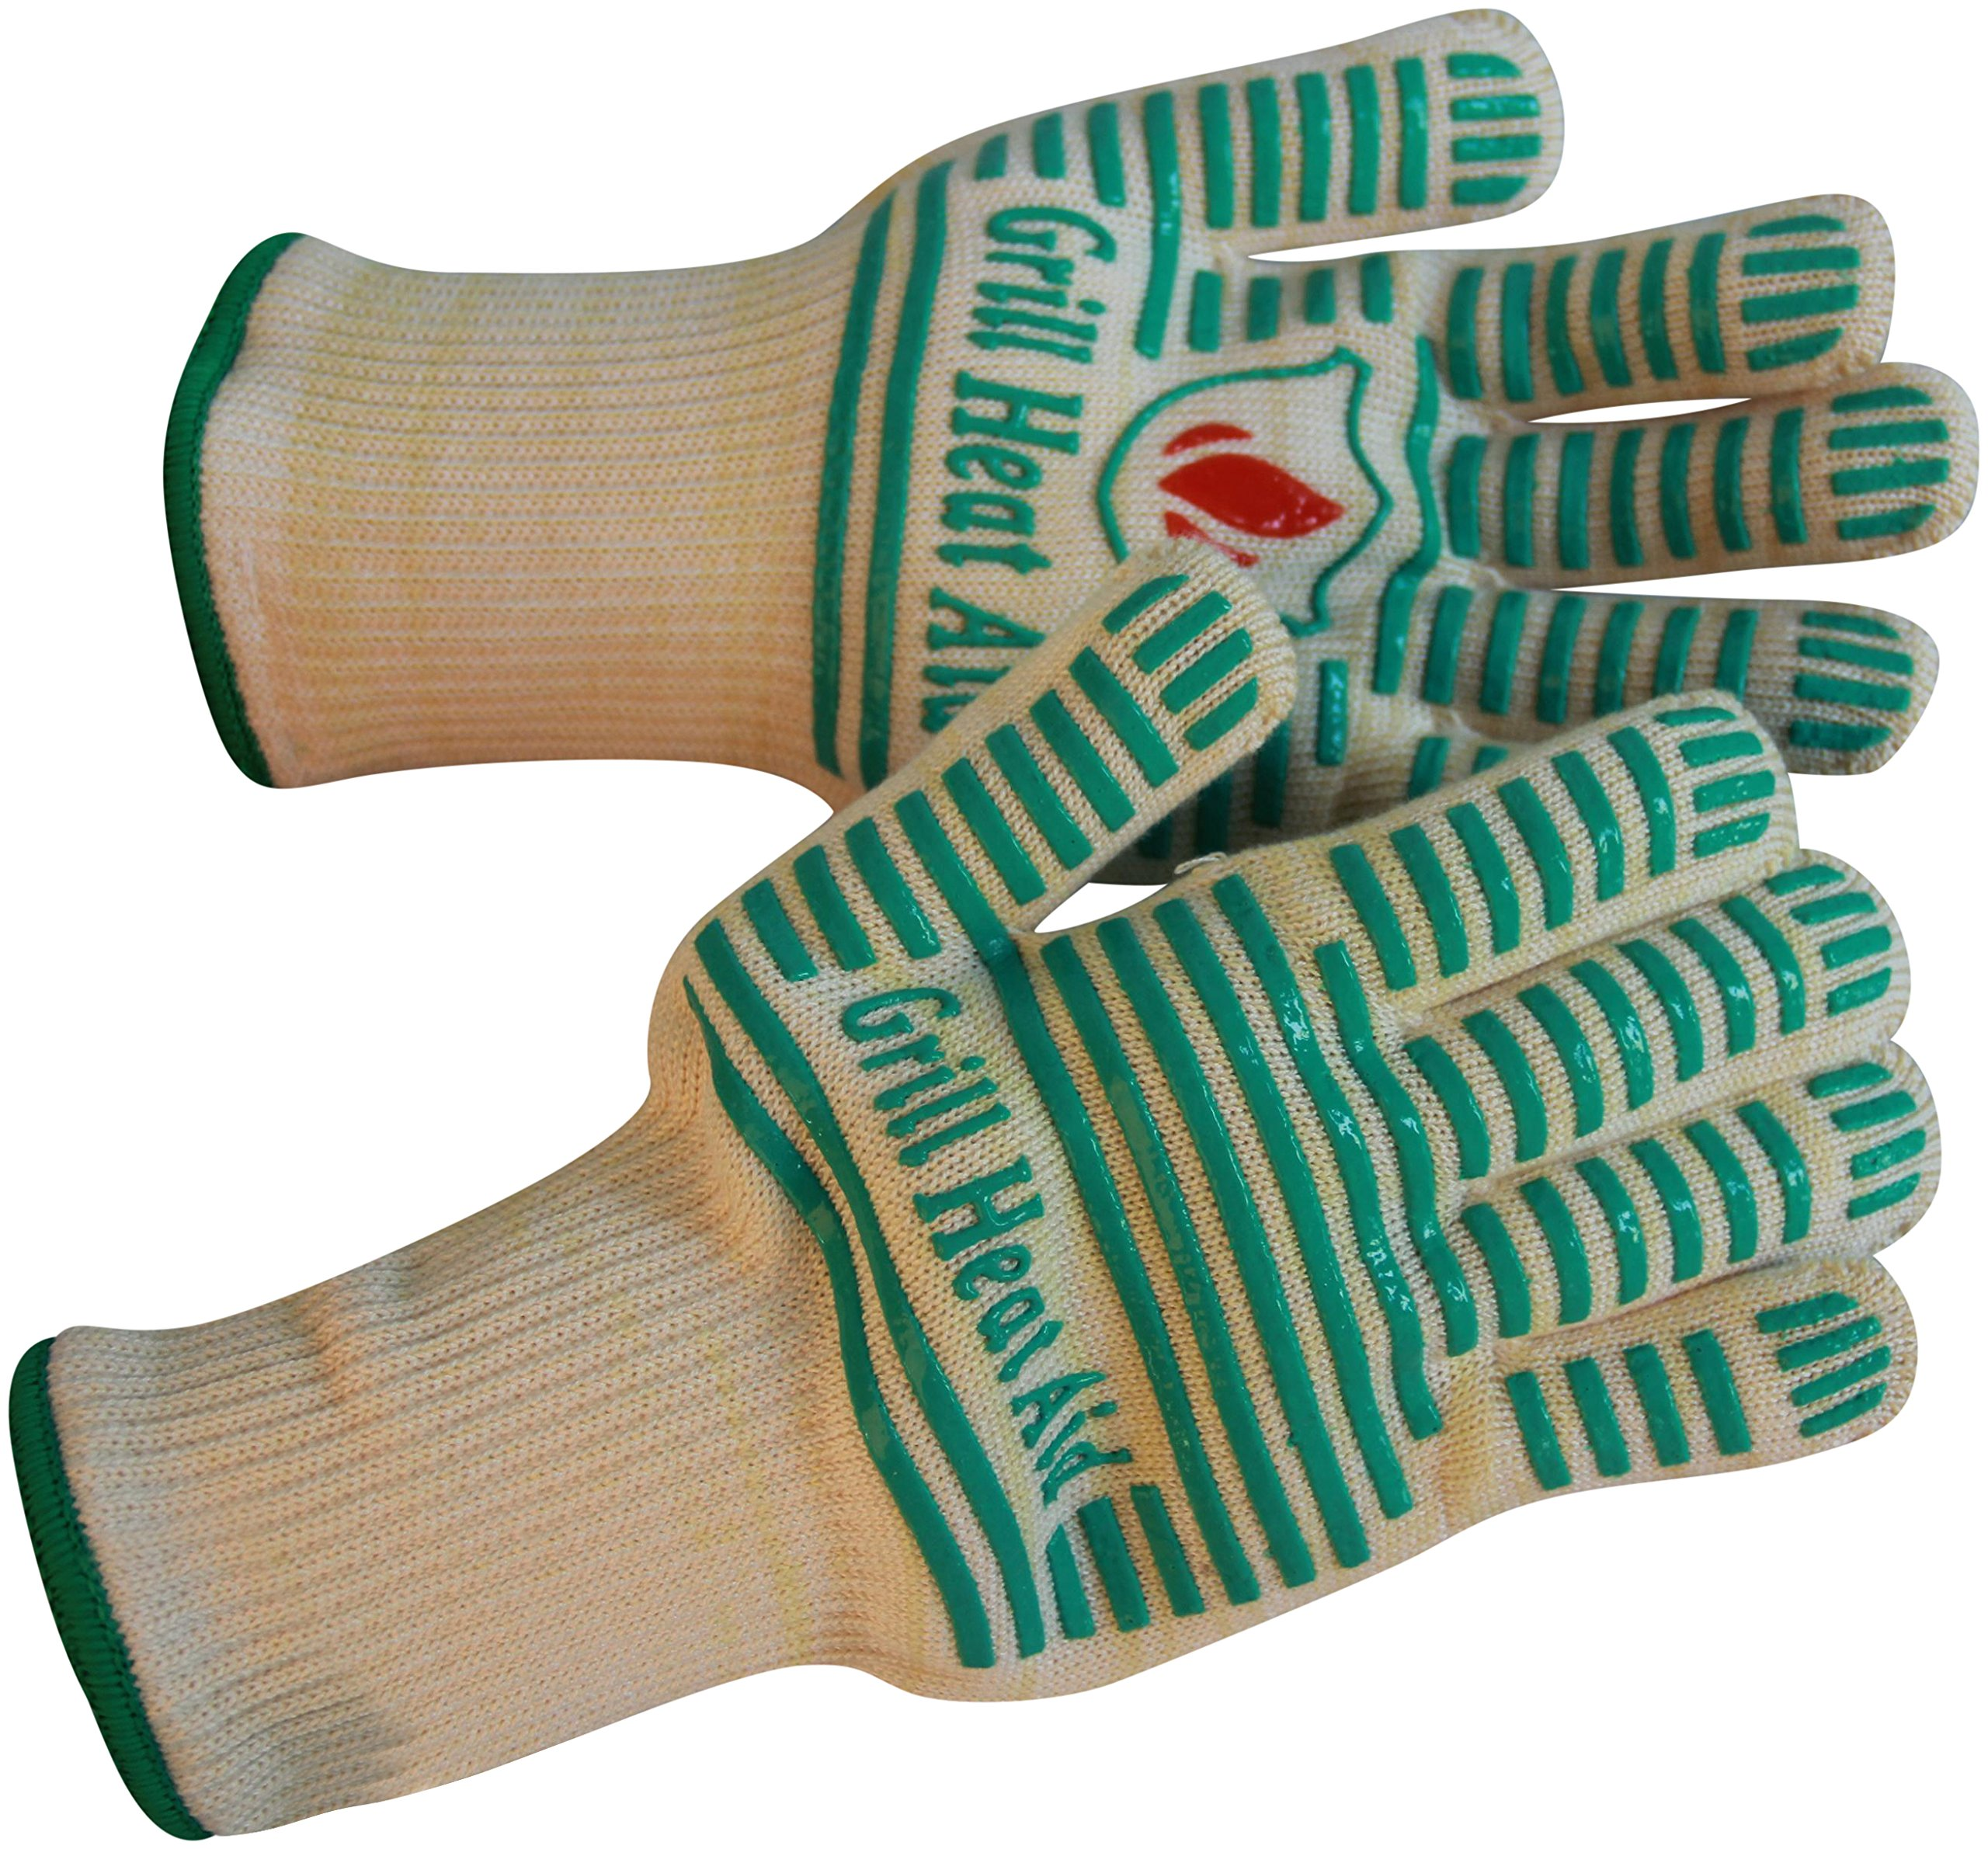 Grill Heat Aid Extreme 932°F Heat Resistant - Light-Weight, Flexible BBQ Gloves - 100% Cotton Lining For Super Comfort